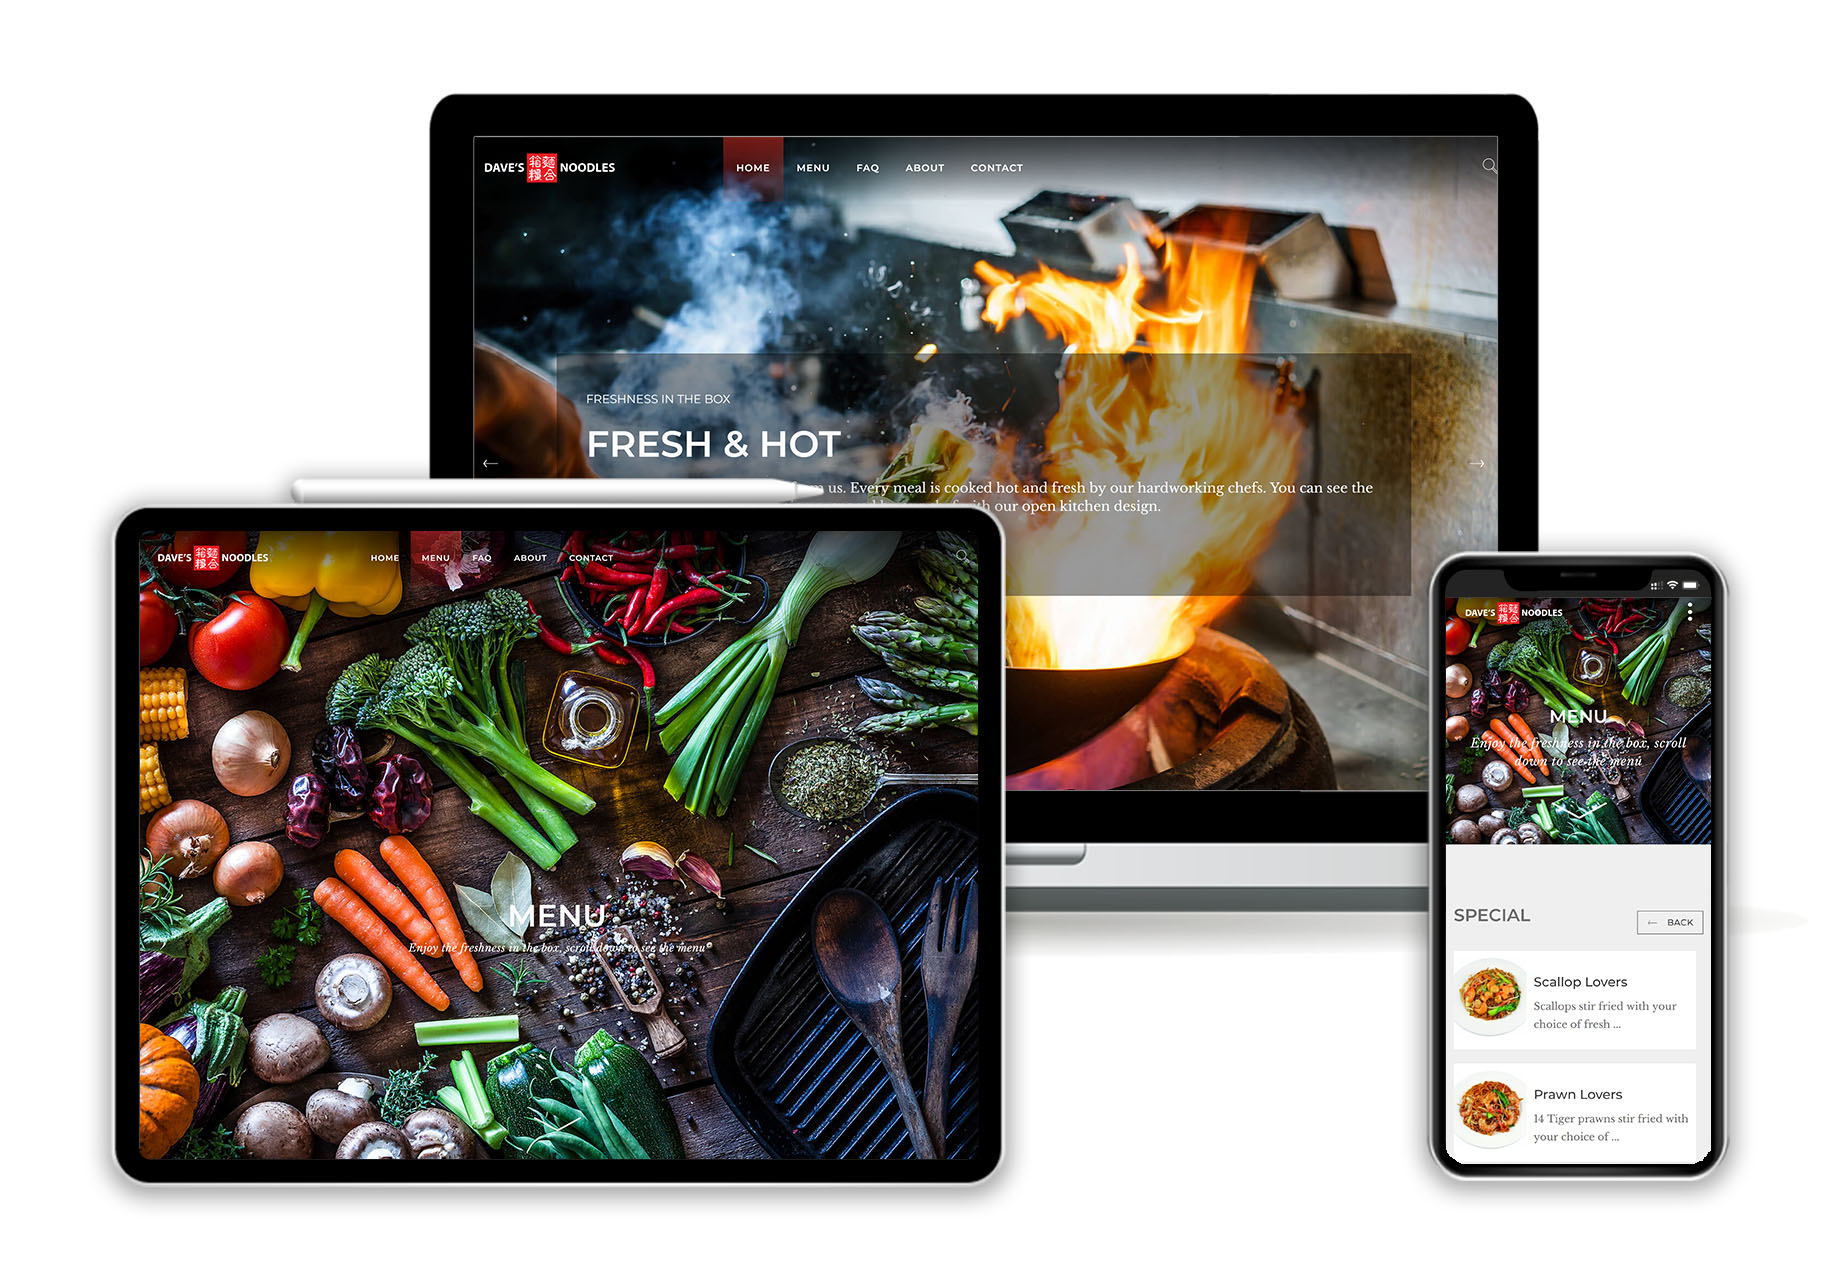 Daves noodles responsive